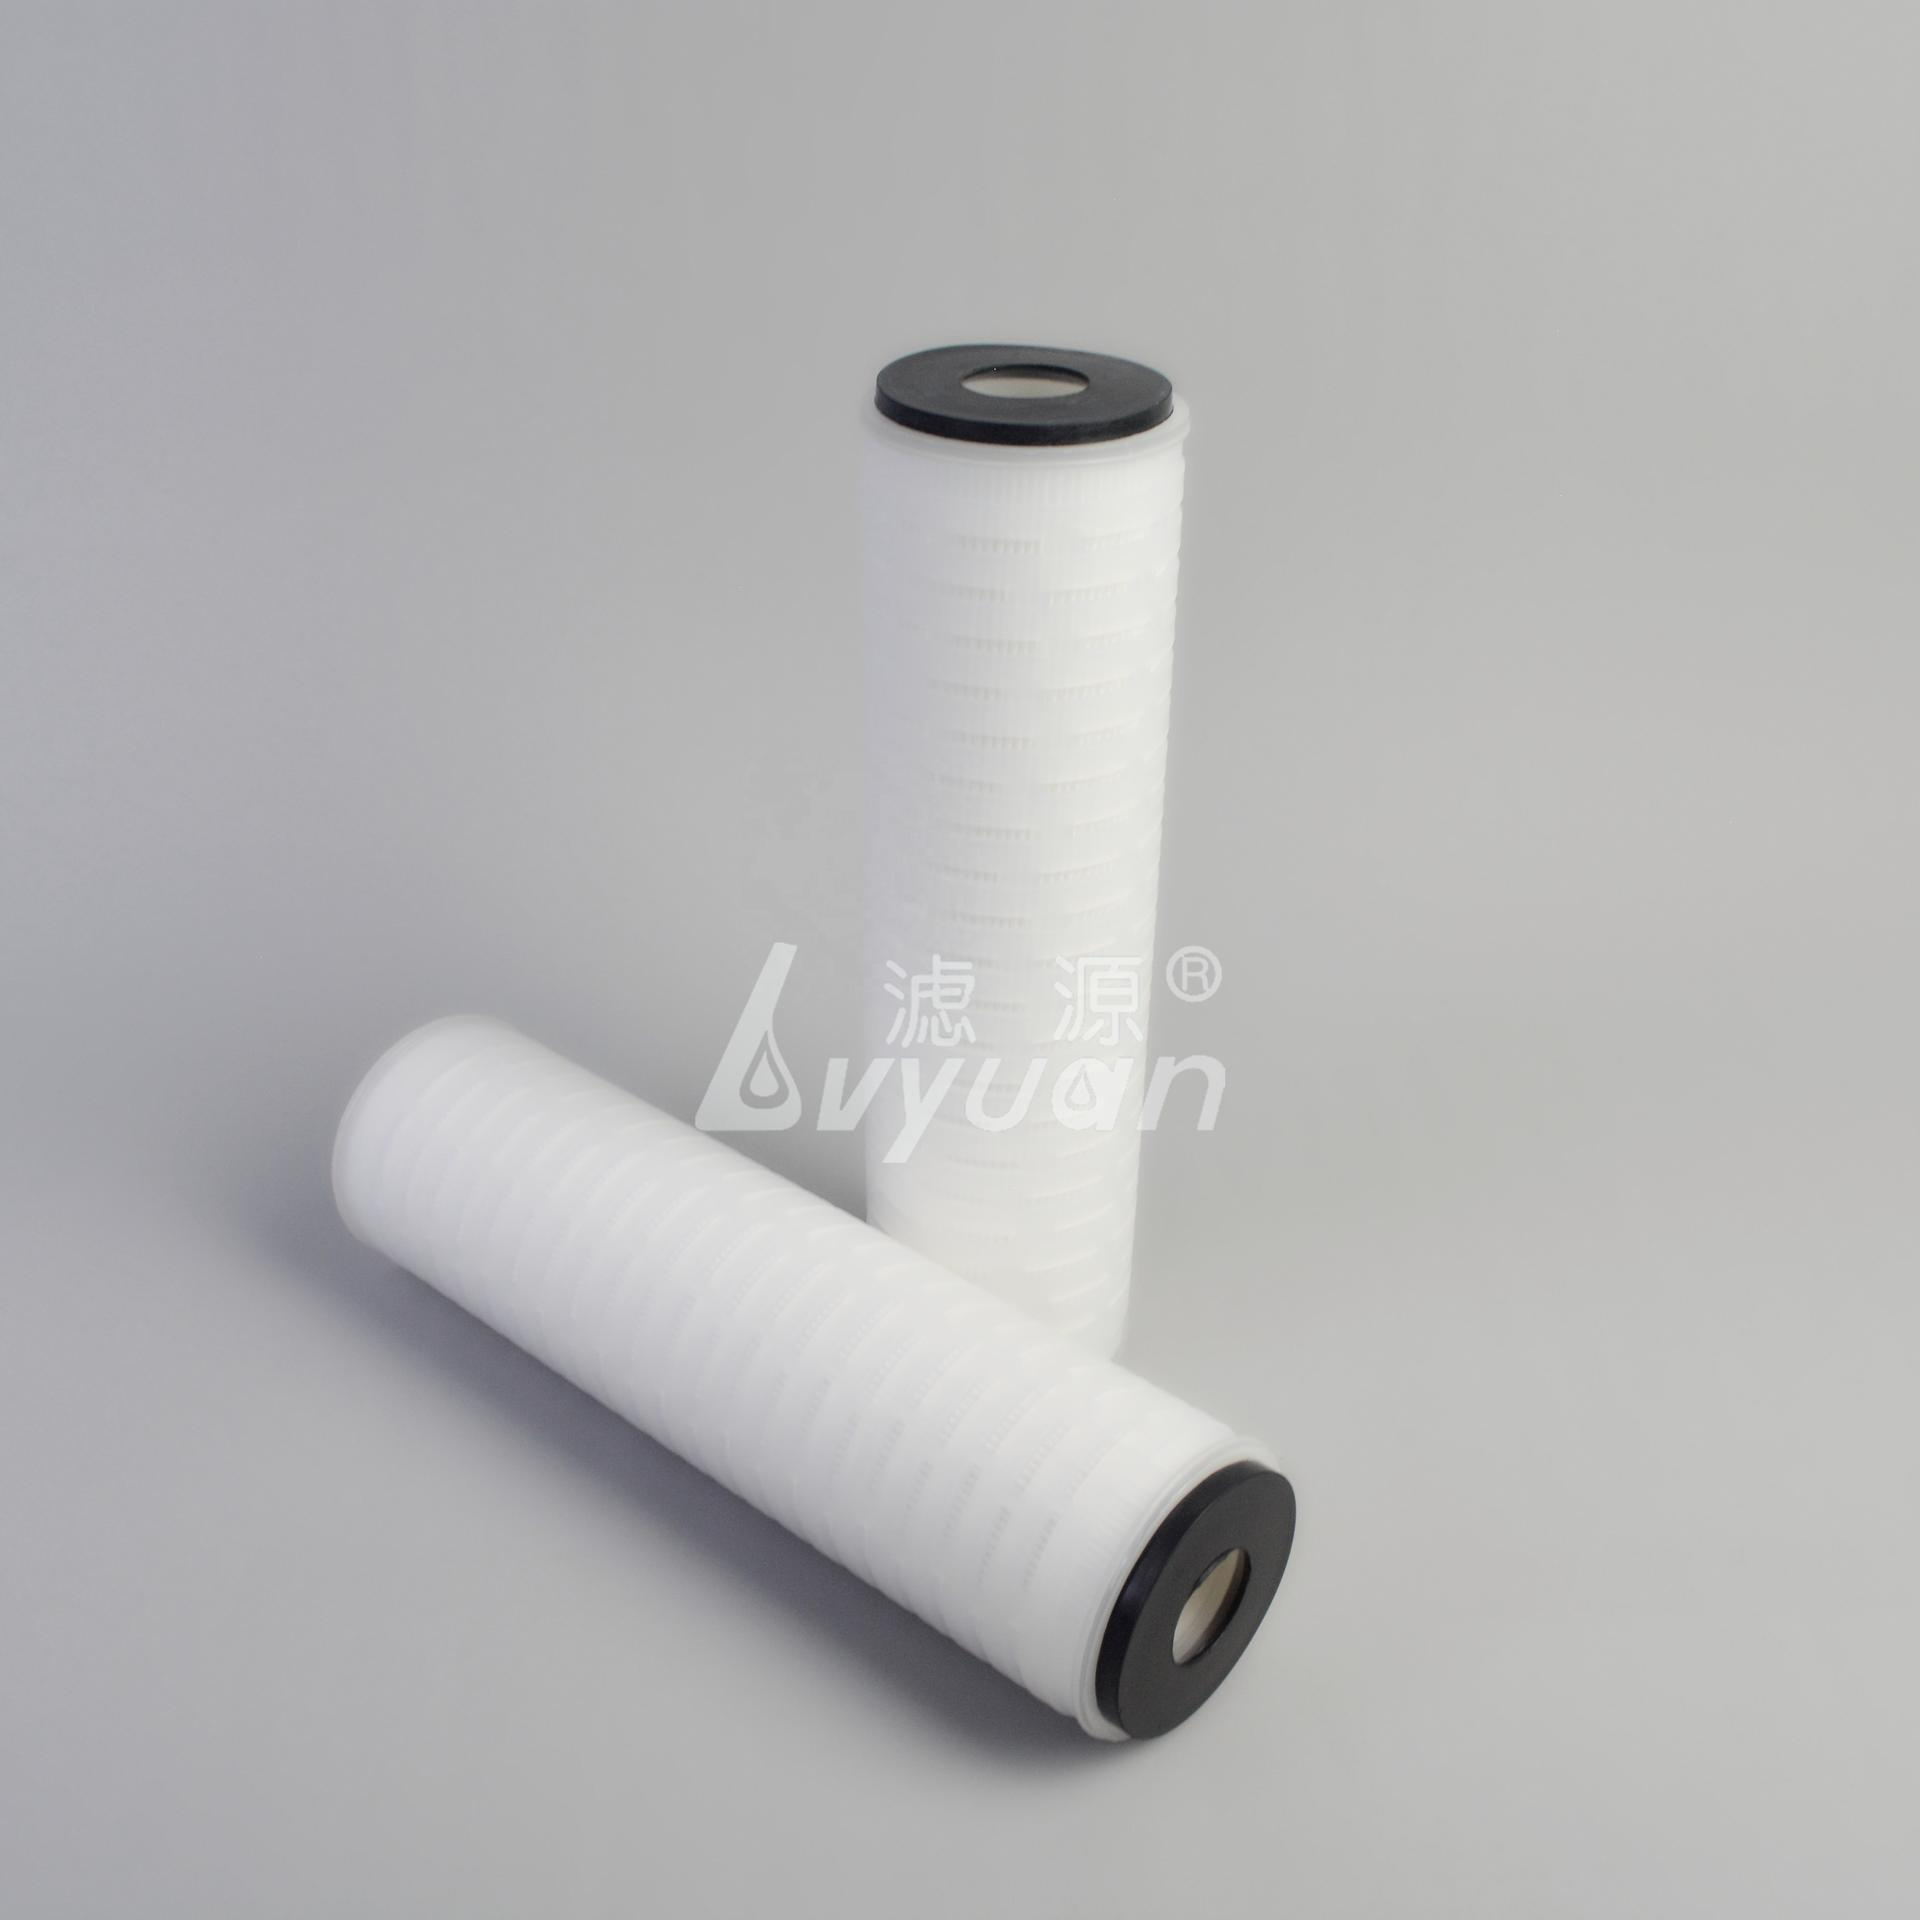 0.2um PP PTFE PVDF PES NYLON 5/10/20 inch pleated membrane water filter with DOE SOE end-cap